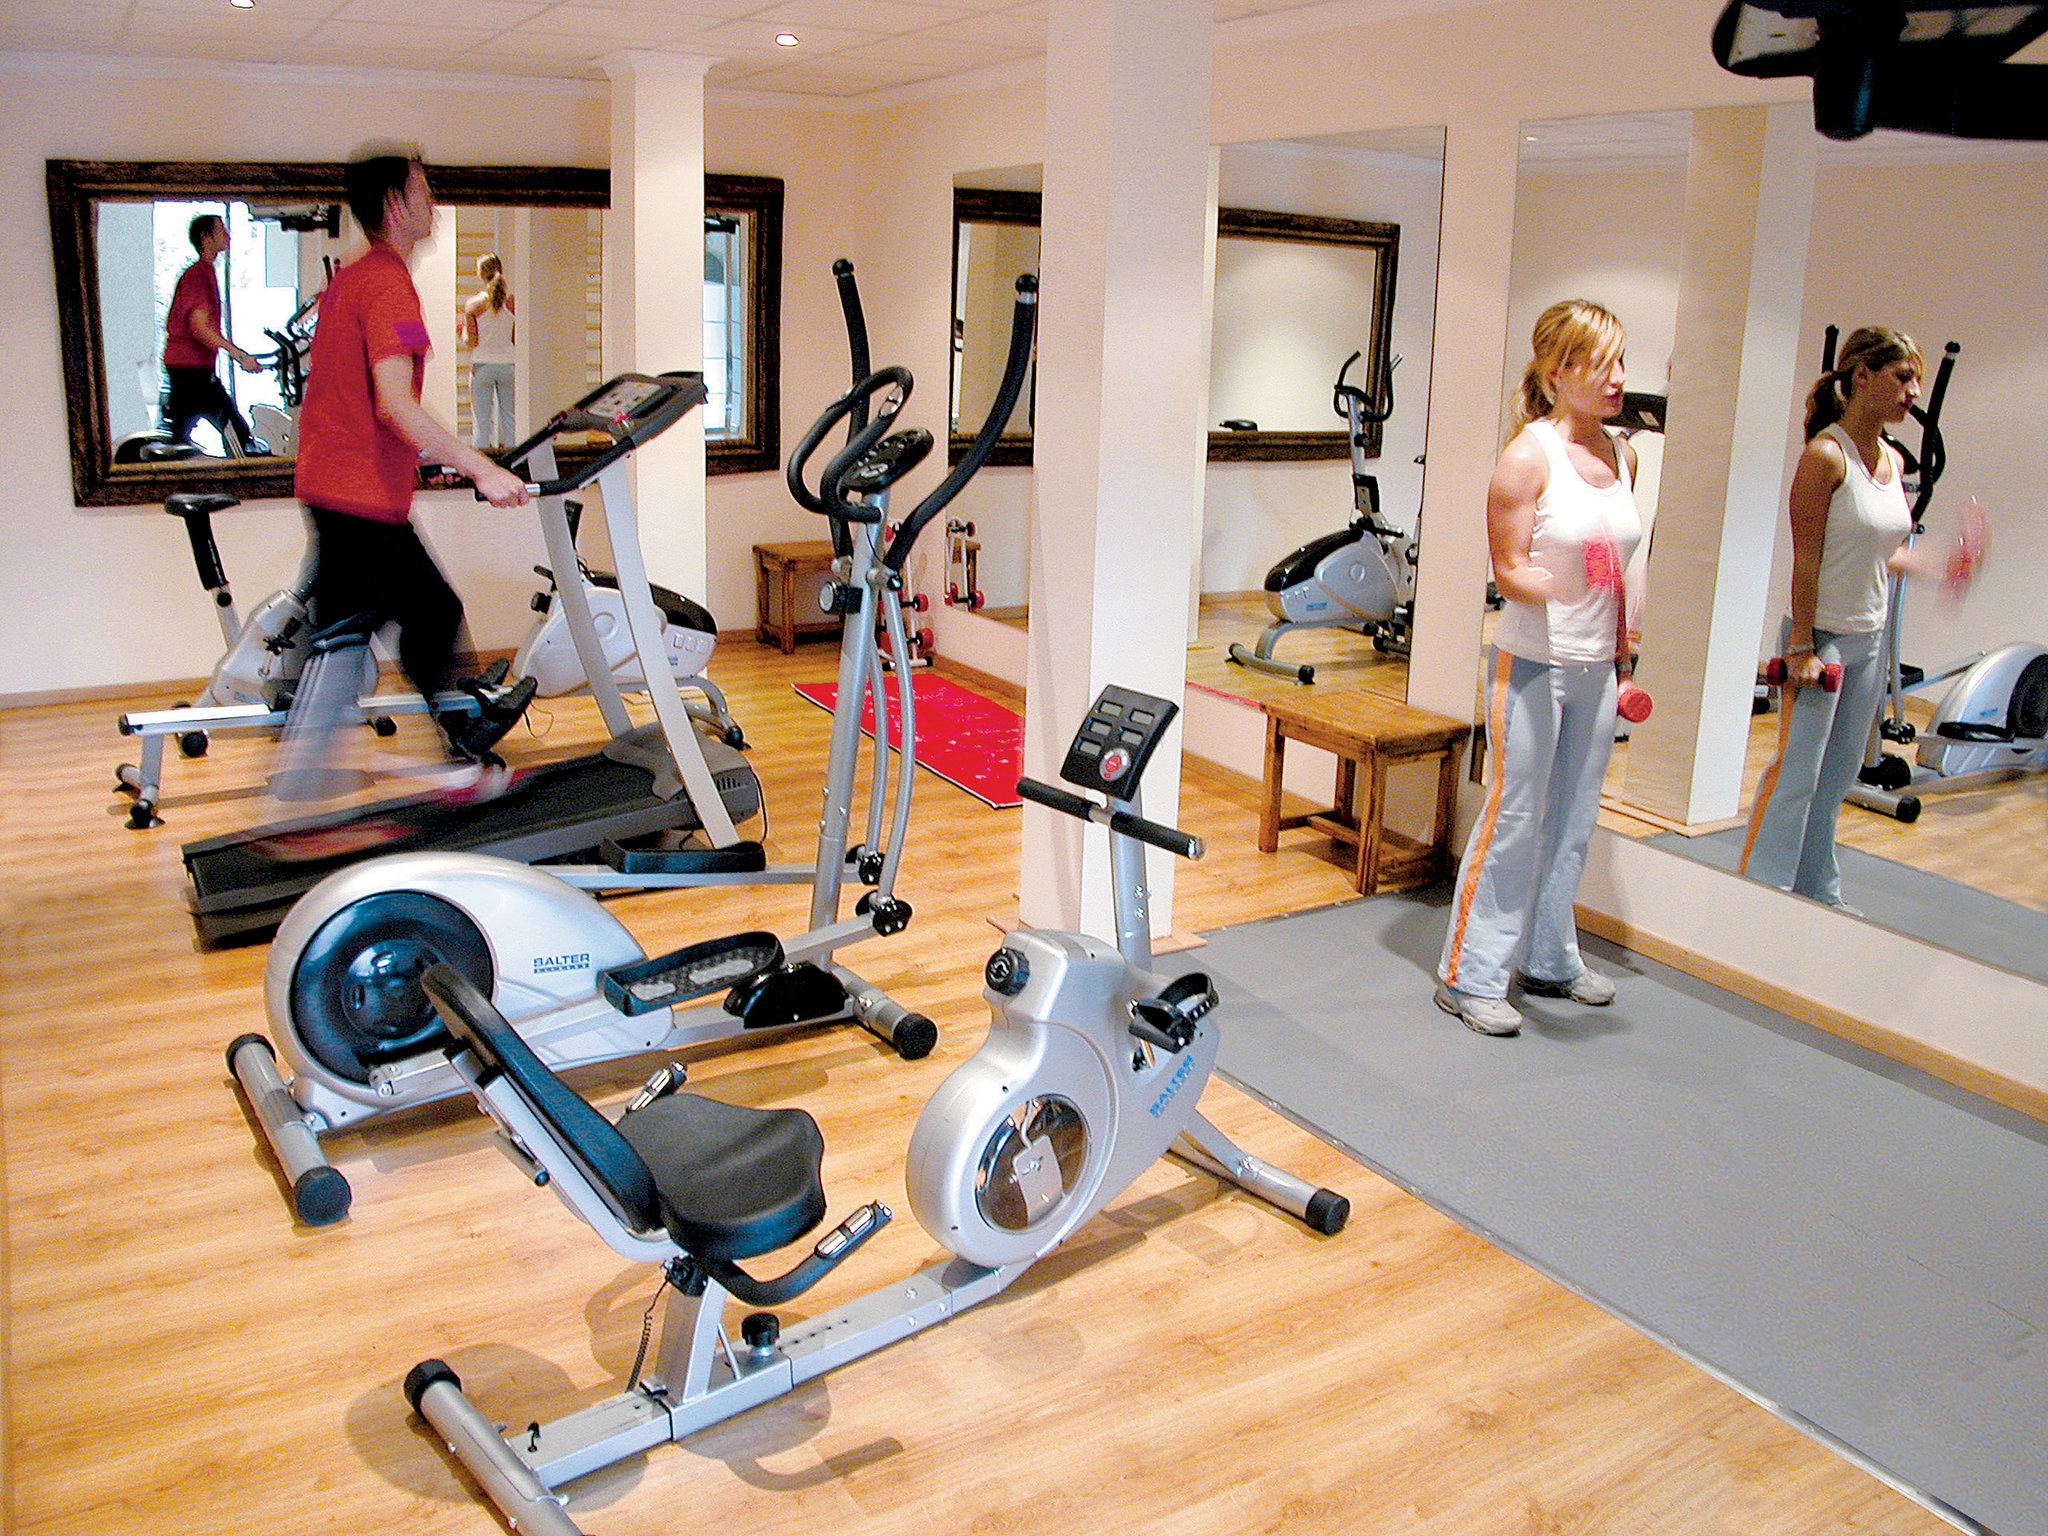 Health & Fitness Clubs - Statistics & Facts